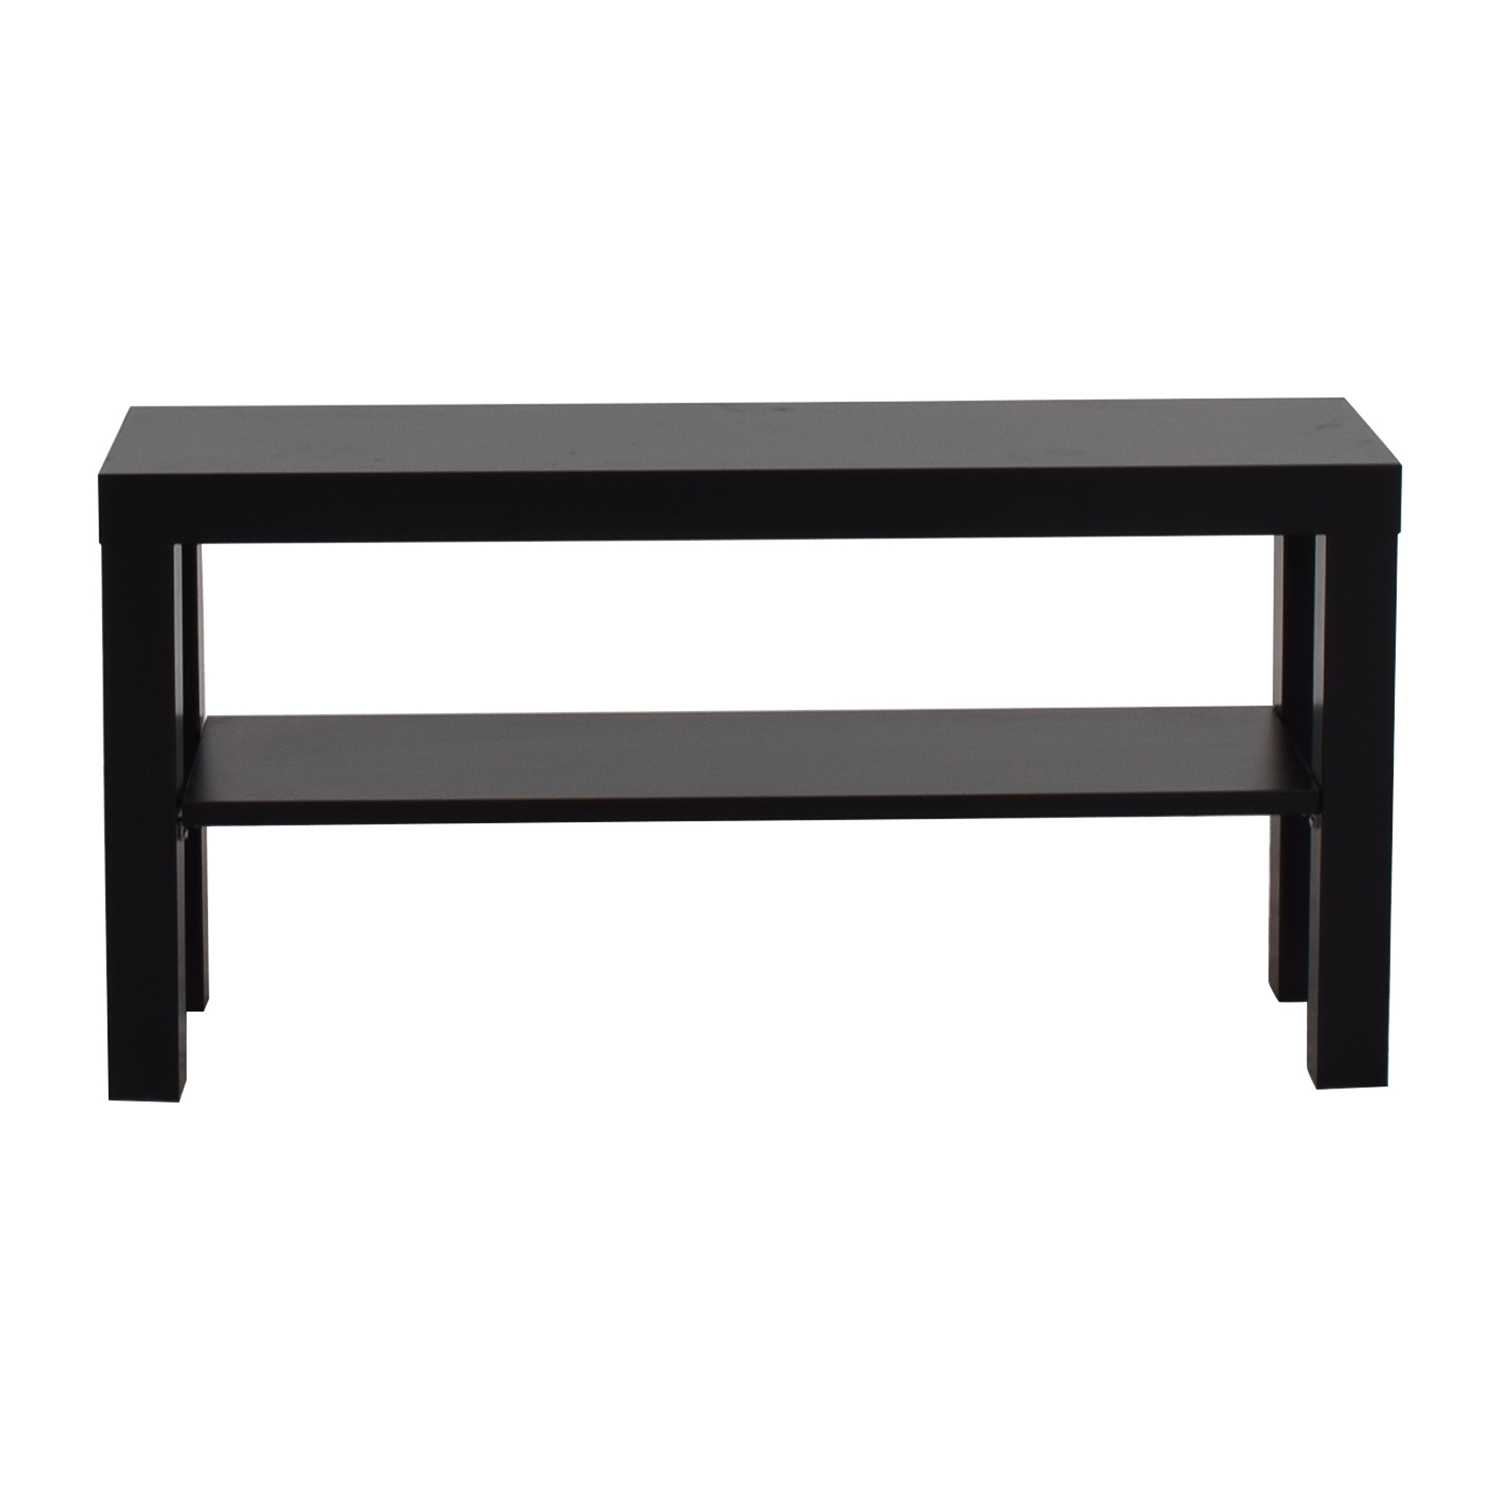 ikea lack sofa table lack coffee table oak effect 90x55 cm ikea thesofa. Black Bedroom Furniture Sets. Home Design Ideas